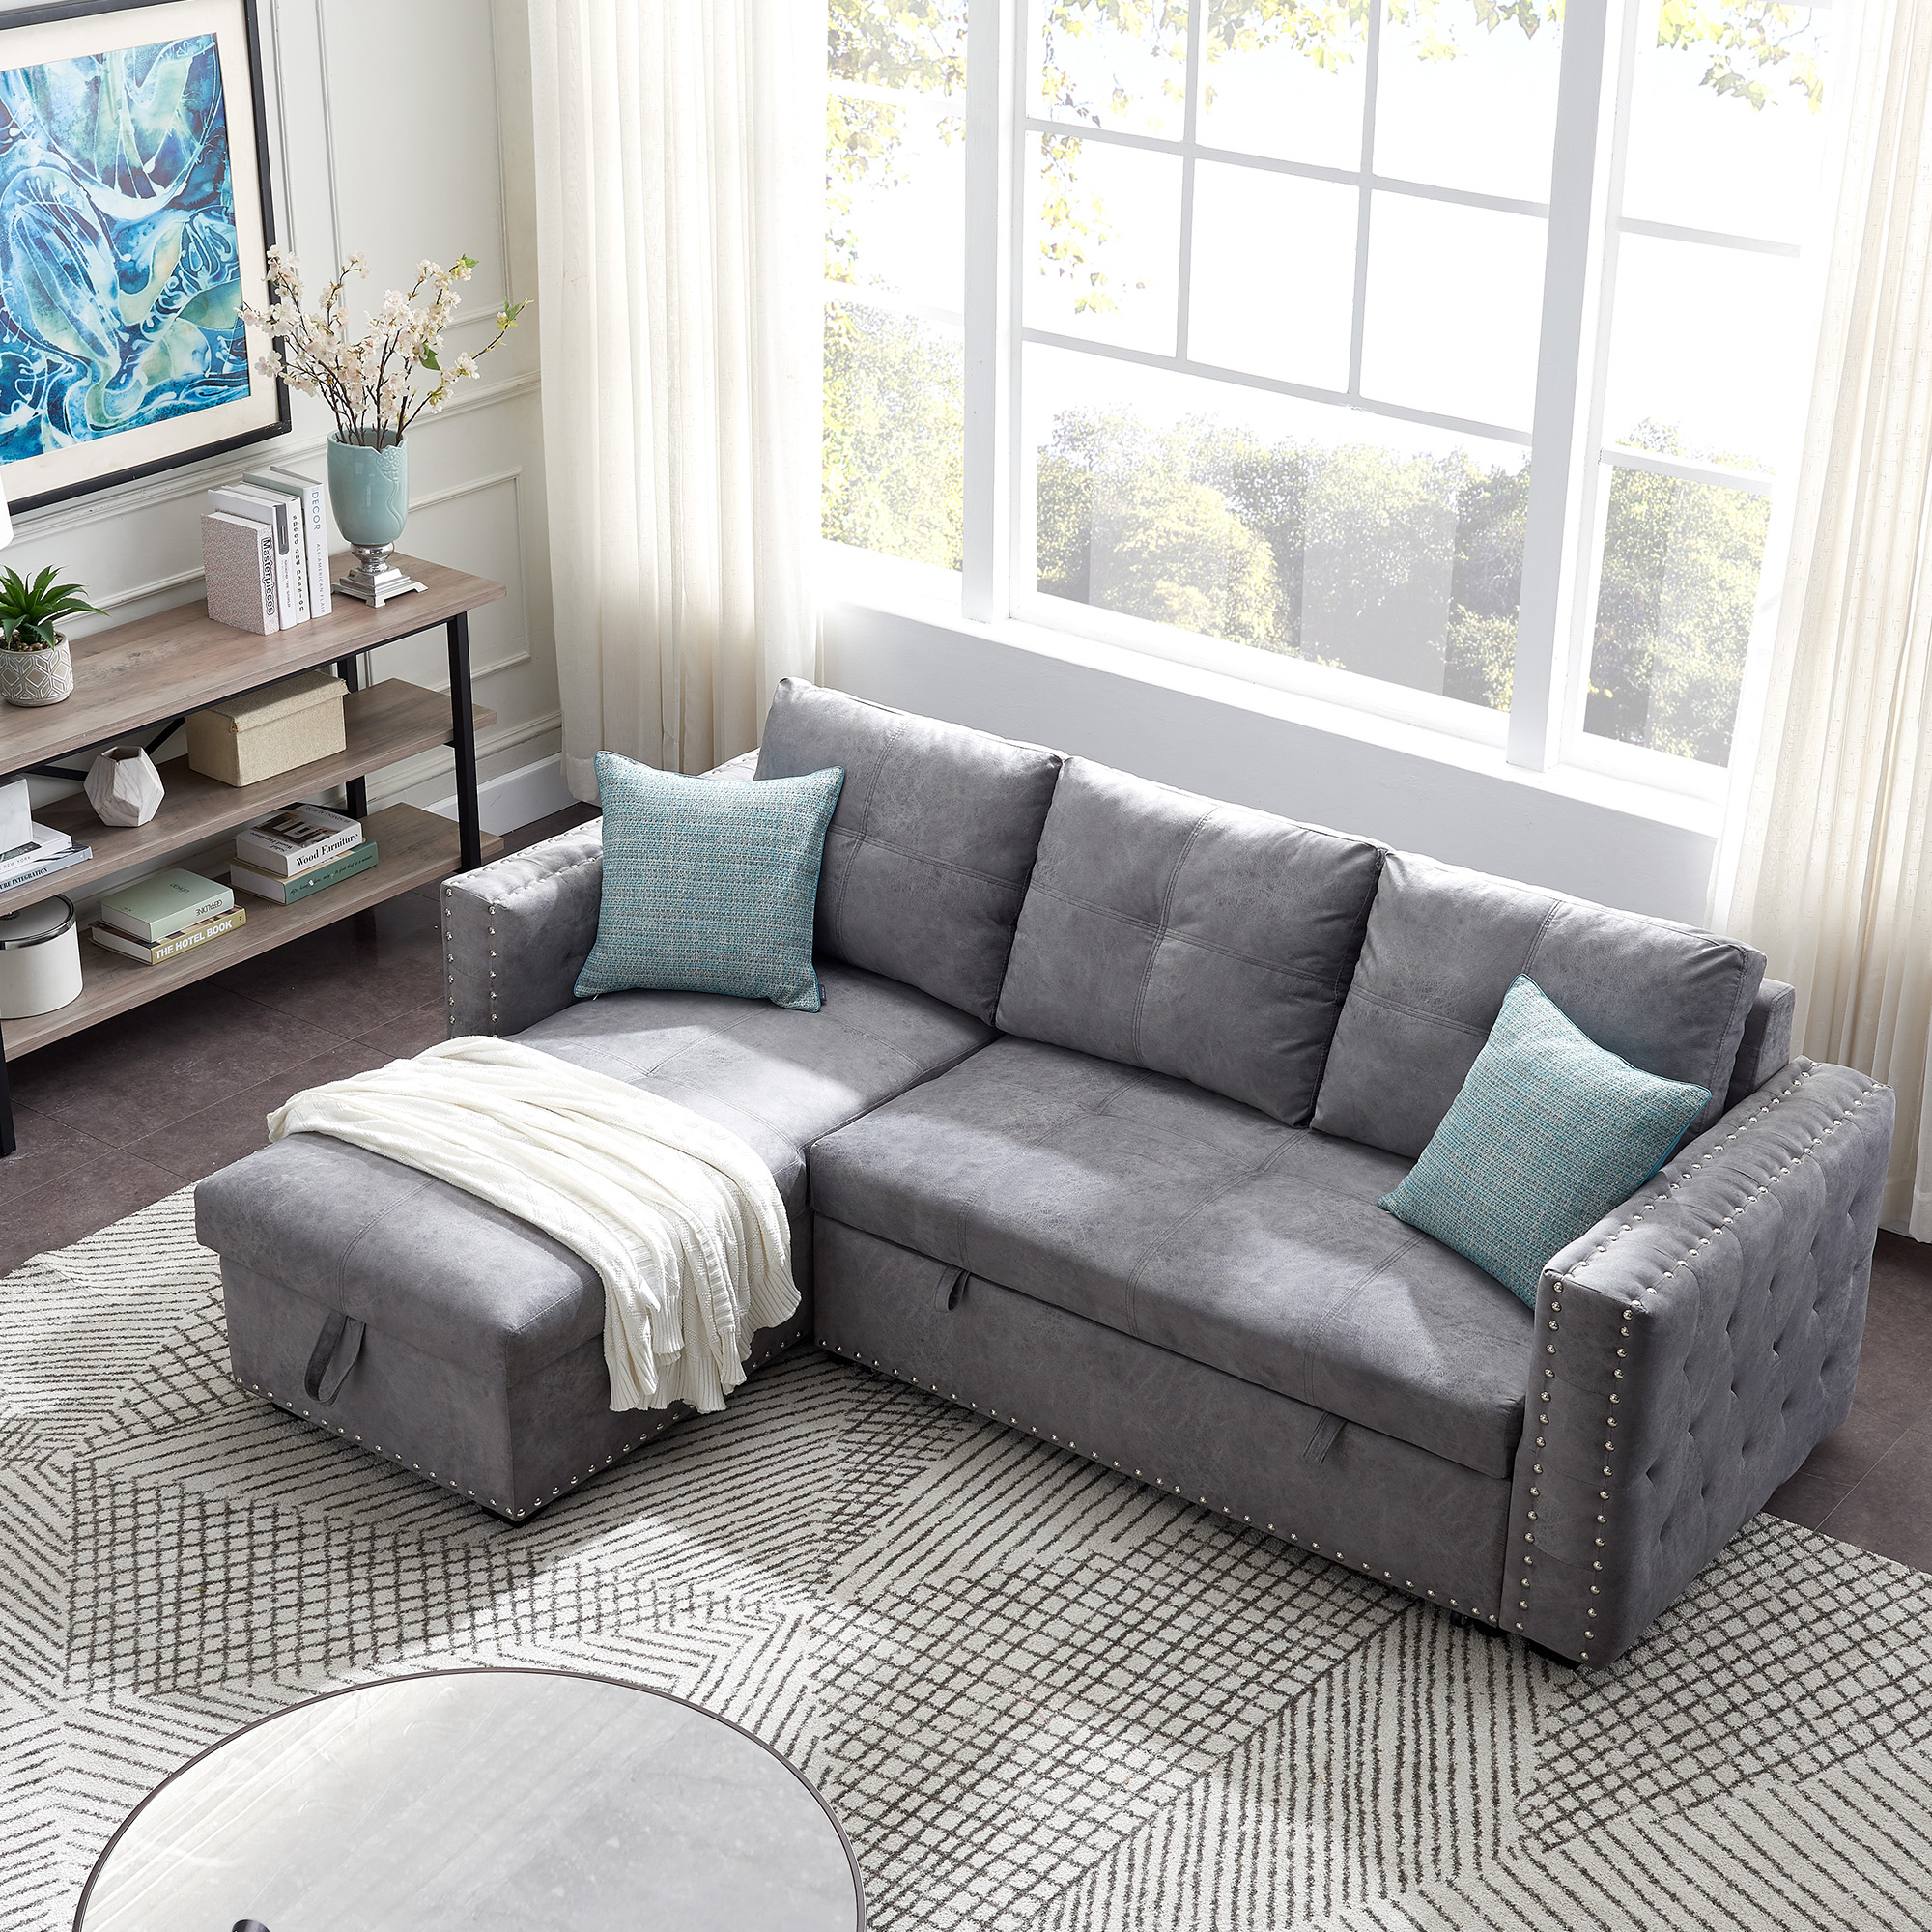 Segmart Sectional Sofa, Gray Fabric – Walmart Within Copenhagen Reversible Small Space Sectional Sofas With Storage (View 6 of 15)